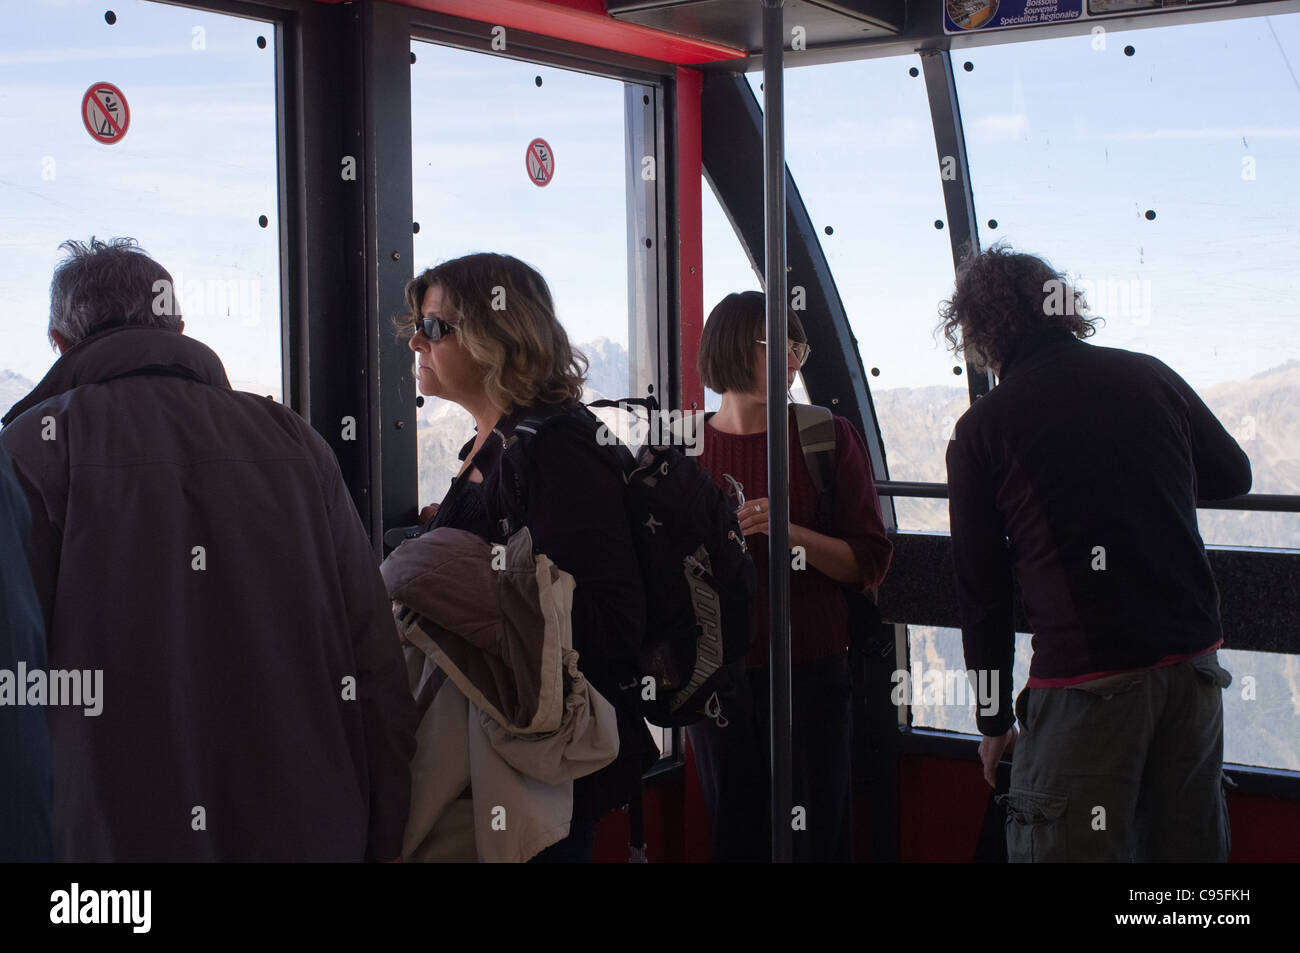 Aiguille du Midi cable car to 3,842 meters. Chamonix, France. 21/09/2011. - Stock Image